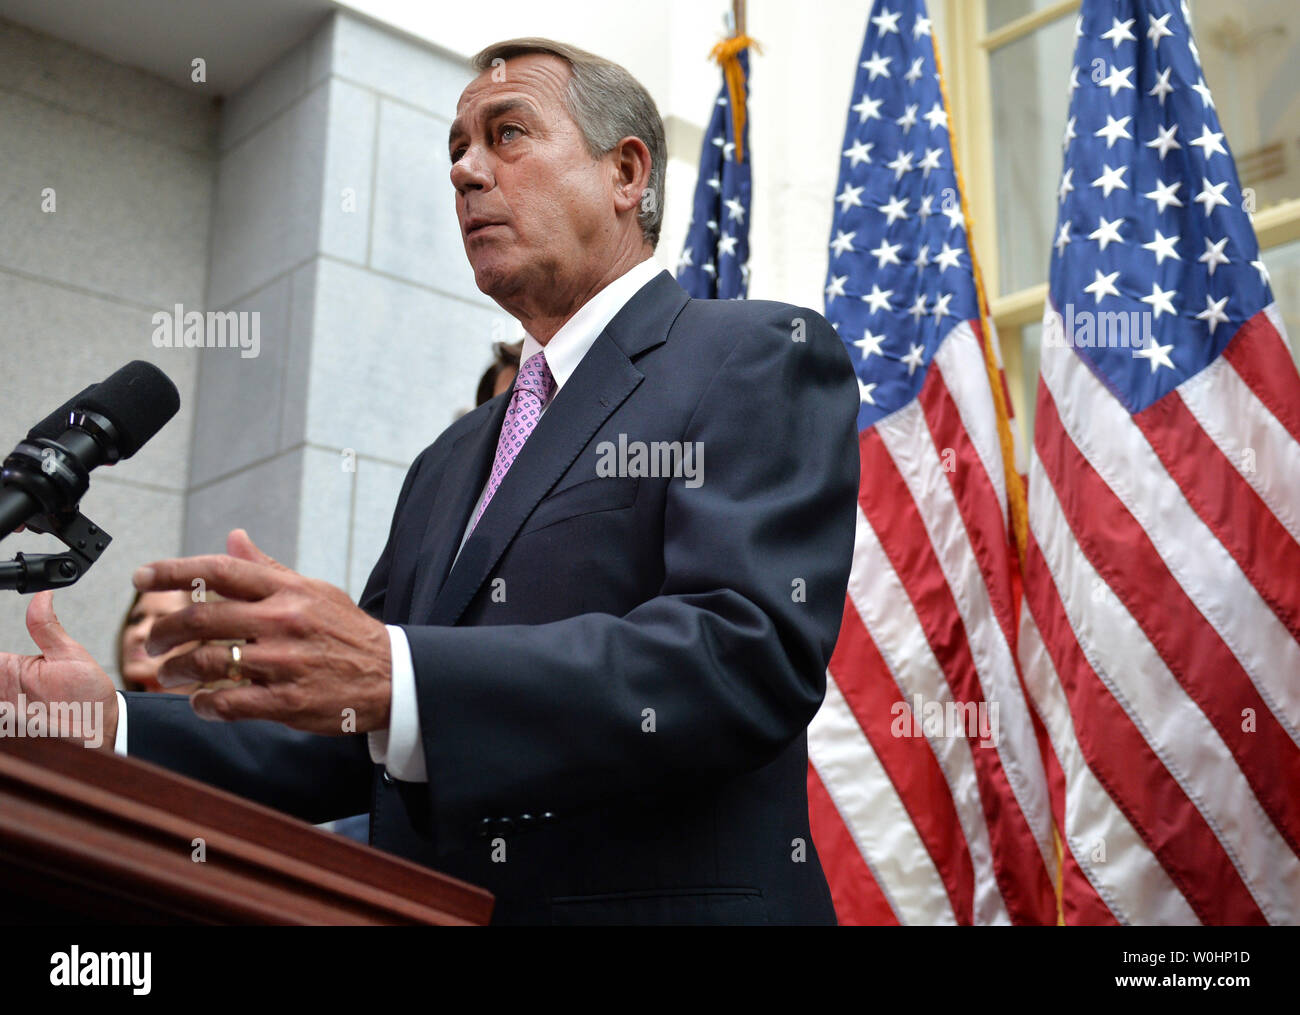 Speaker of the House John Boehner, R-OH, speaks to the press following a House Republican meeting on Capitol Hill in Washington D.C. on February 25, 2015.  Photo by Kevin Dietsch - Stock Image